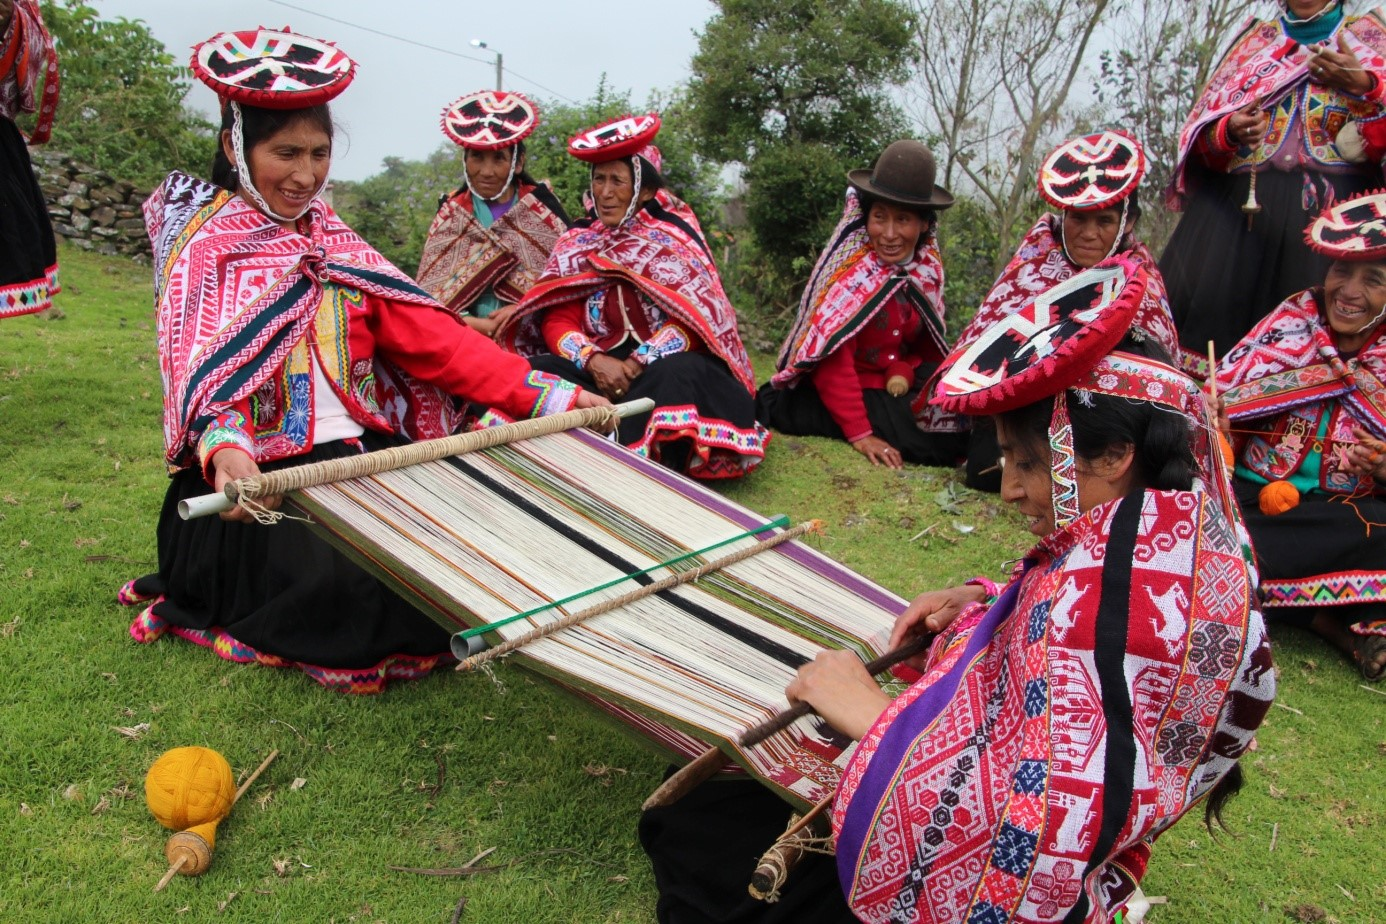 Les artisanes de la communauté de Ccachin (district de Lares, région de Cusco) font partie de l'association Inkakunaq Ruwaynin. Crédit photo : Victor Charruaud